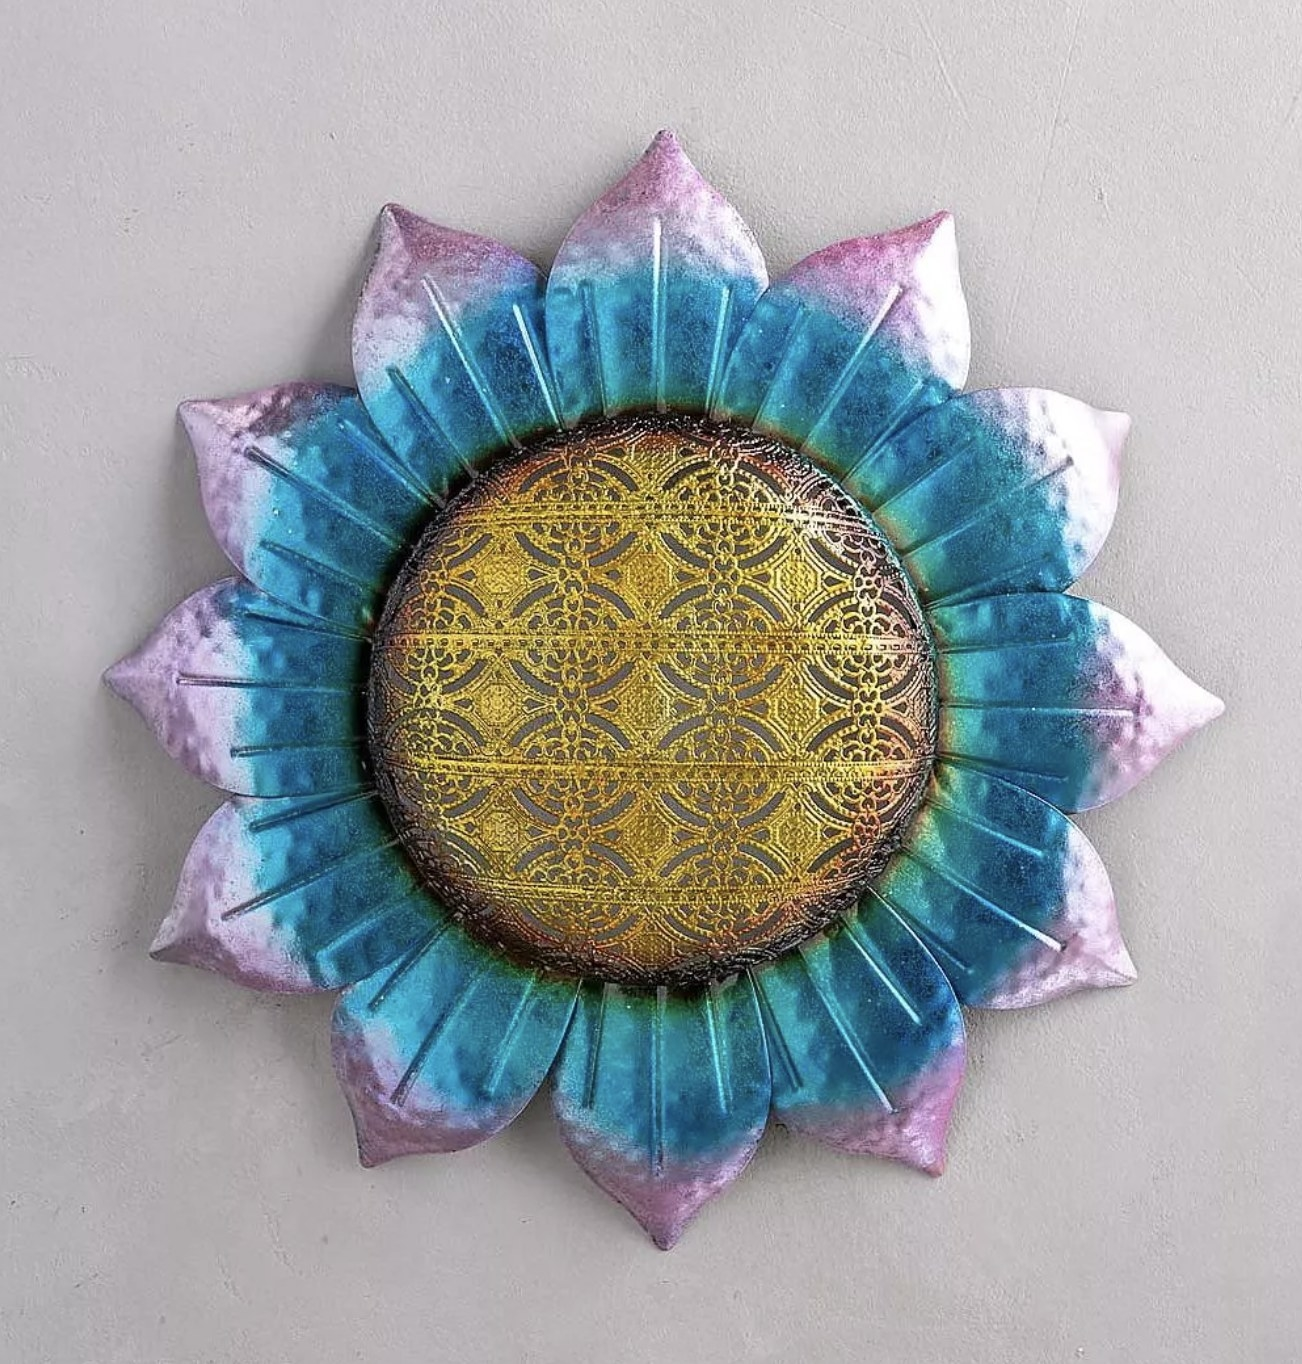 An iridescent 3D flower wall art piece with a lace design in the center